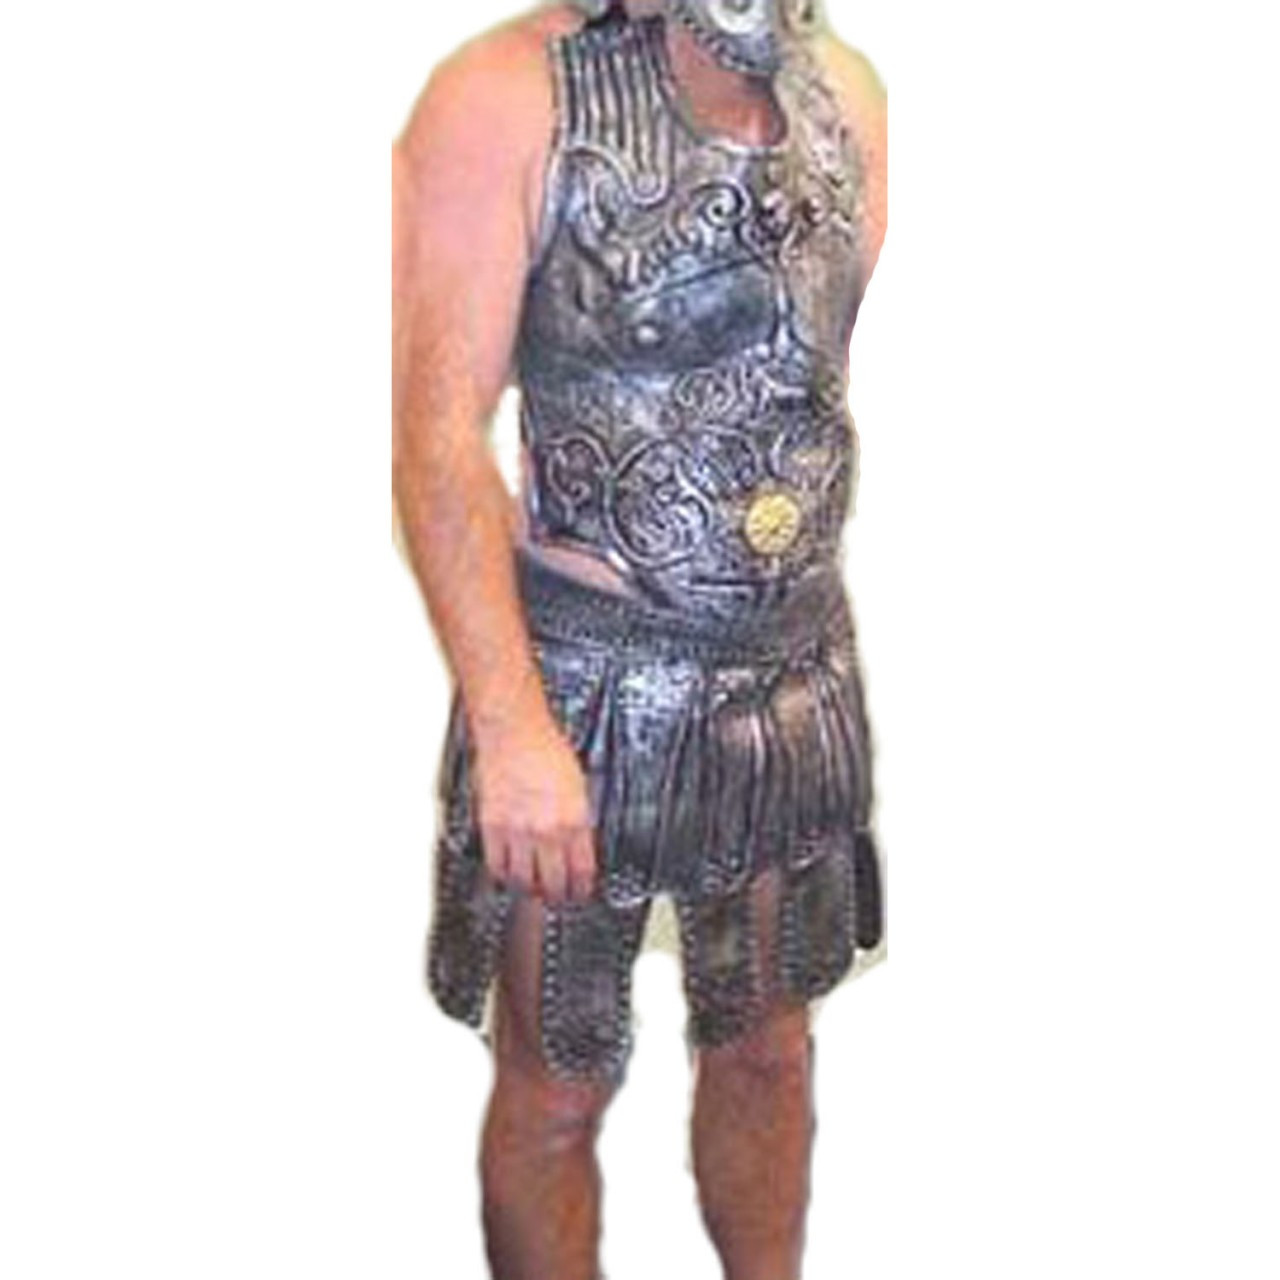 Warrior - Roman Breast Plate and Skirt Mens Costume